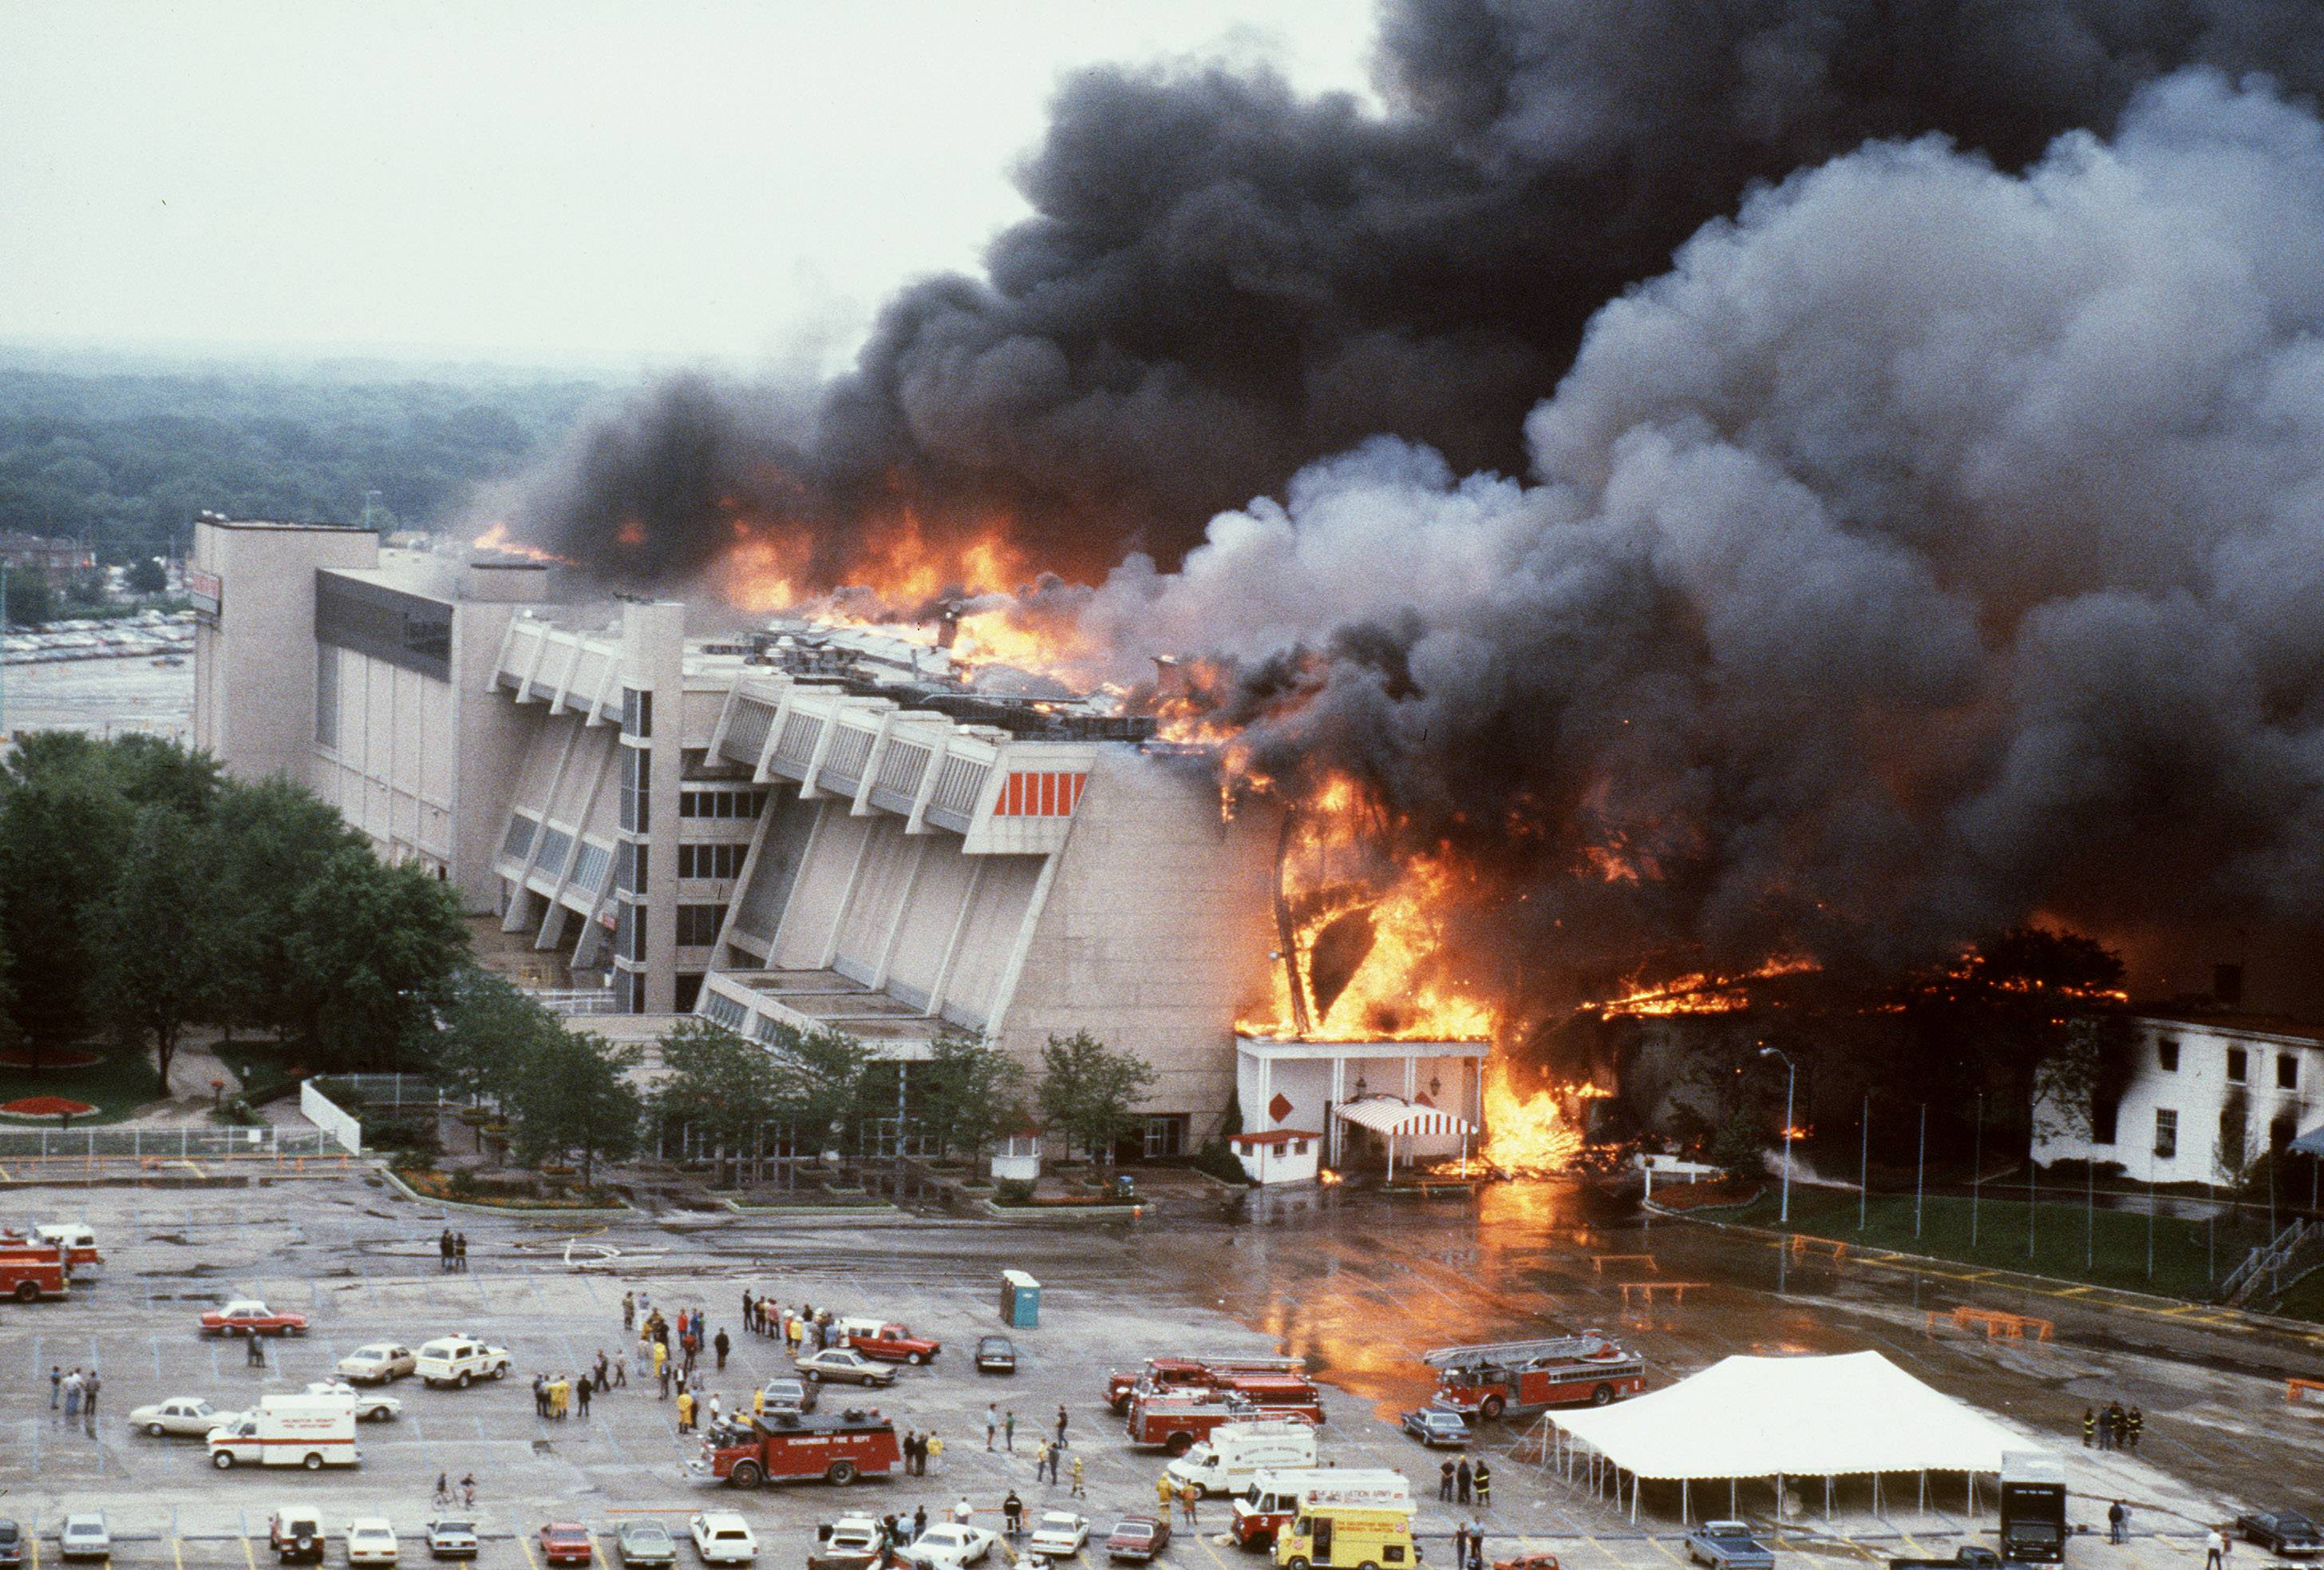 The Arlington Park fire rages out of control on July 31, 1985.